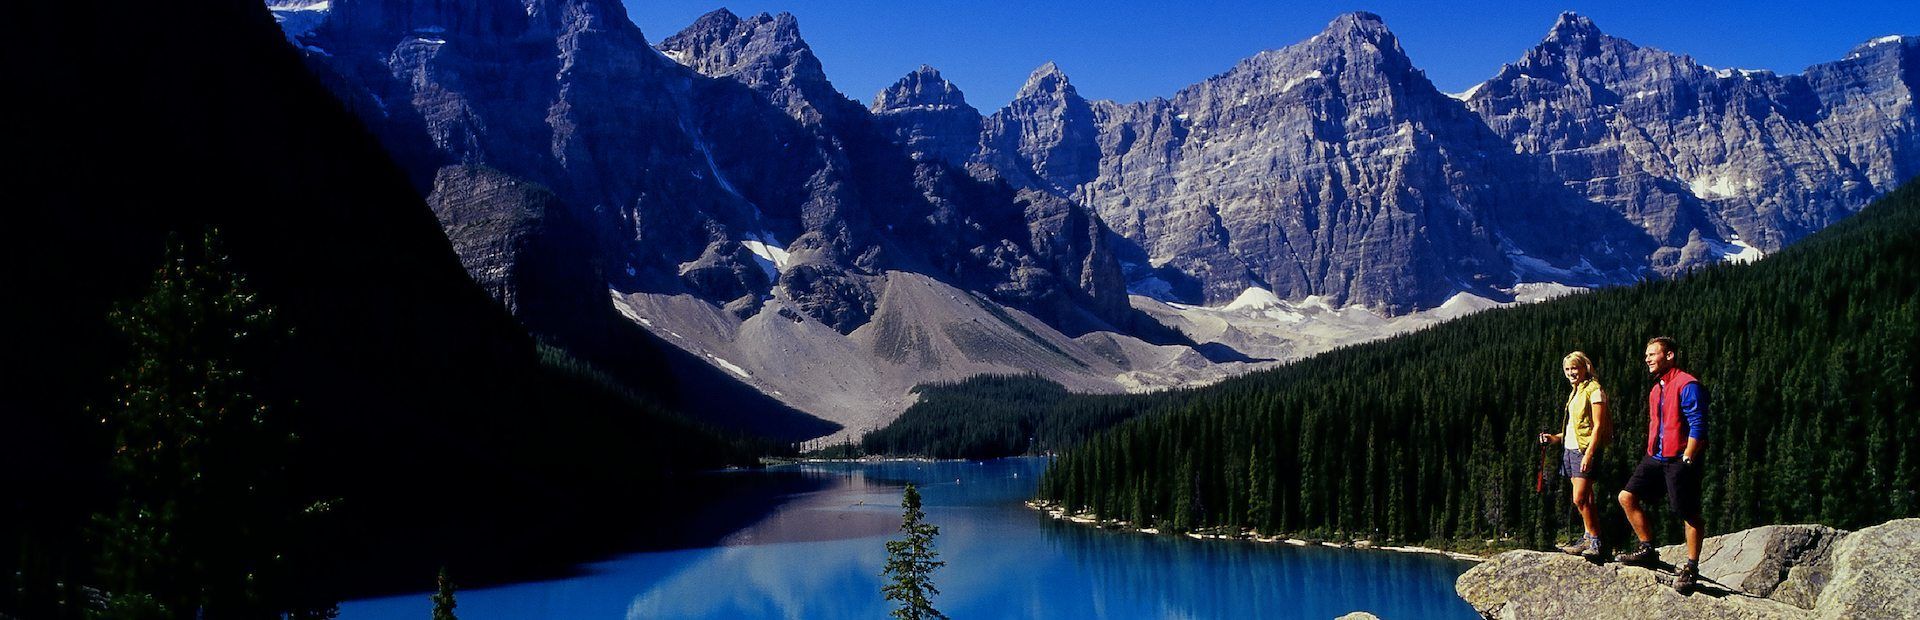 Discover Lake Louise and Moraine Lake Tour